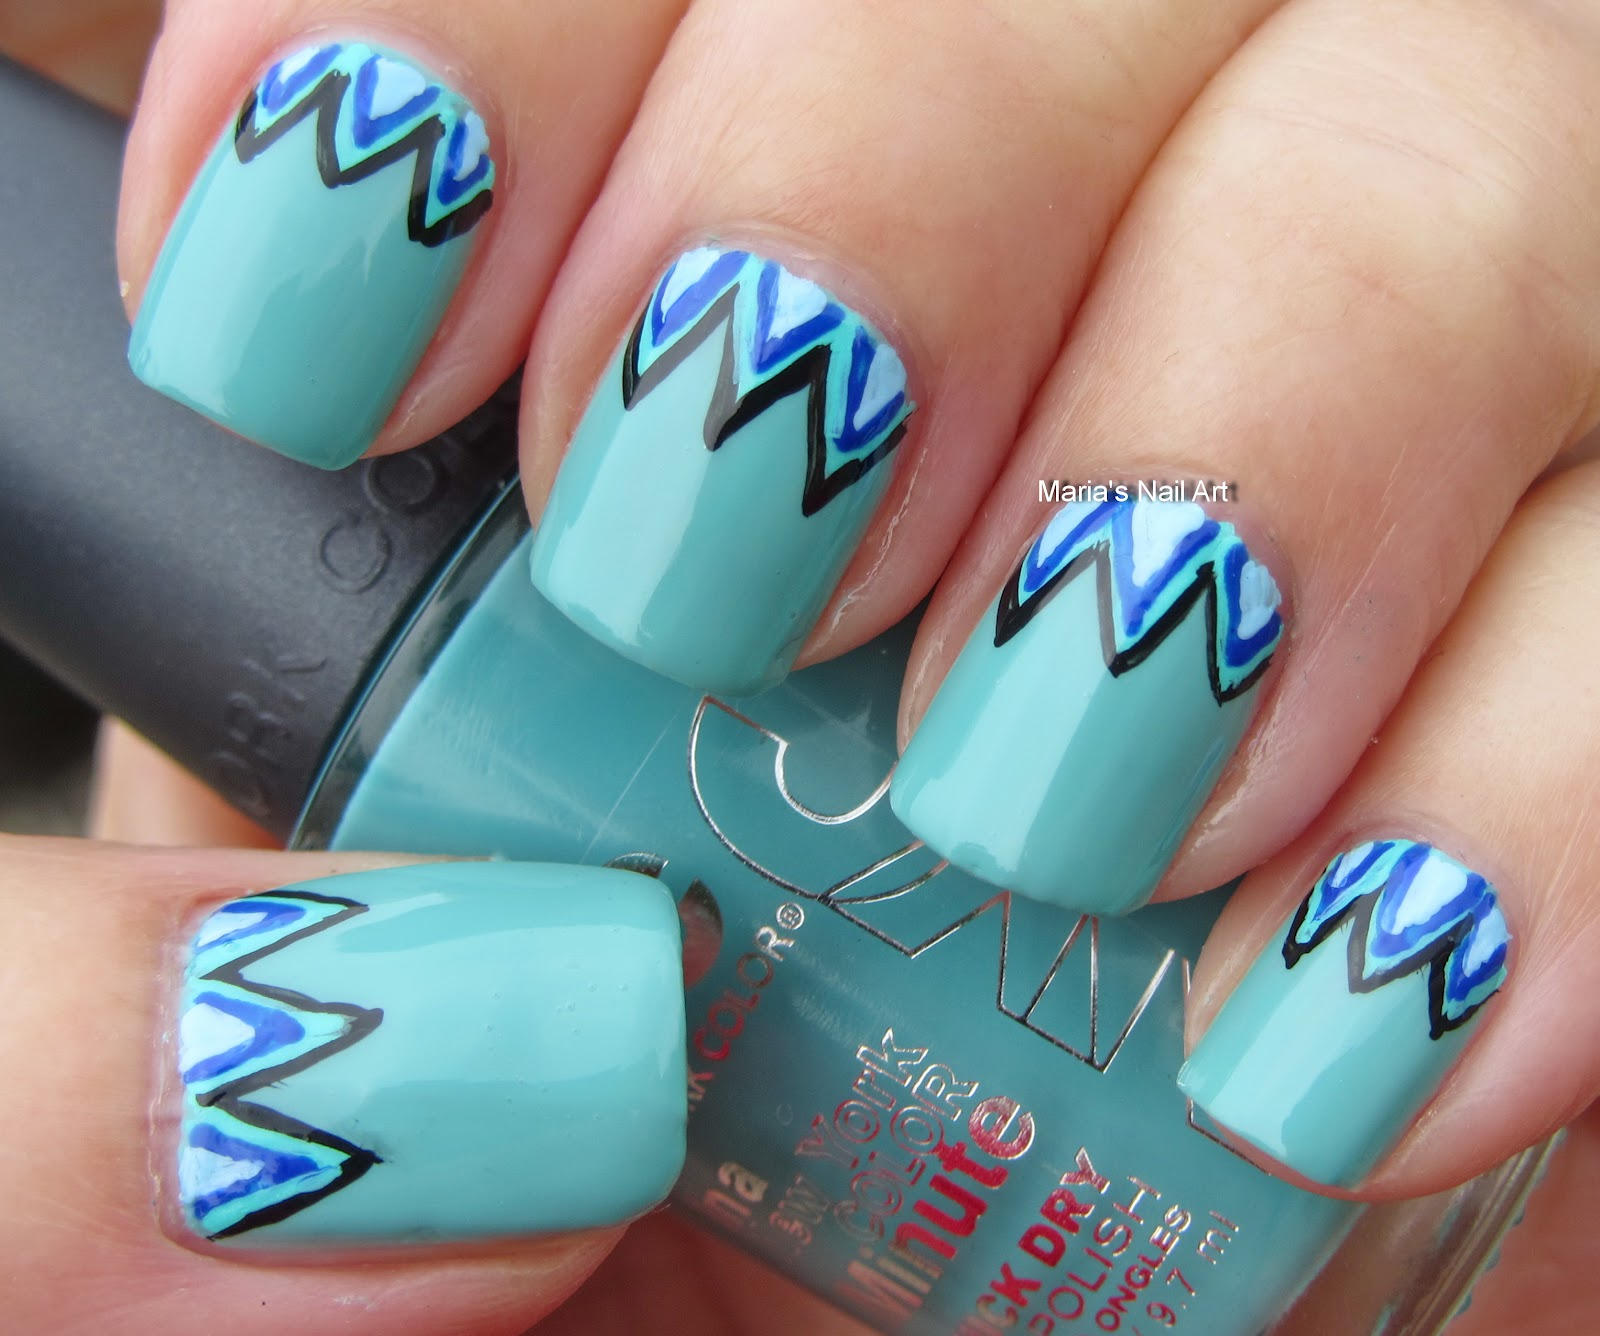 Marias Nail Art And Polish Blog: Zigzag Sweater Nails